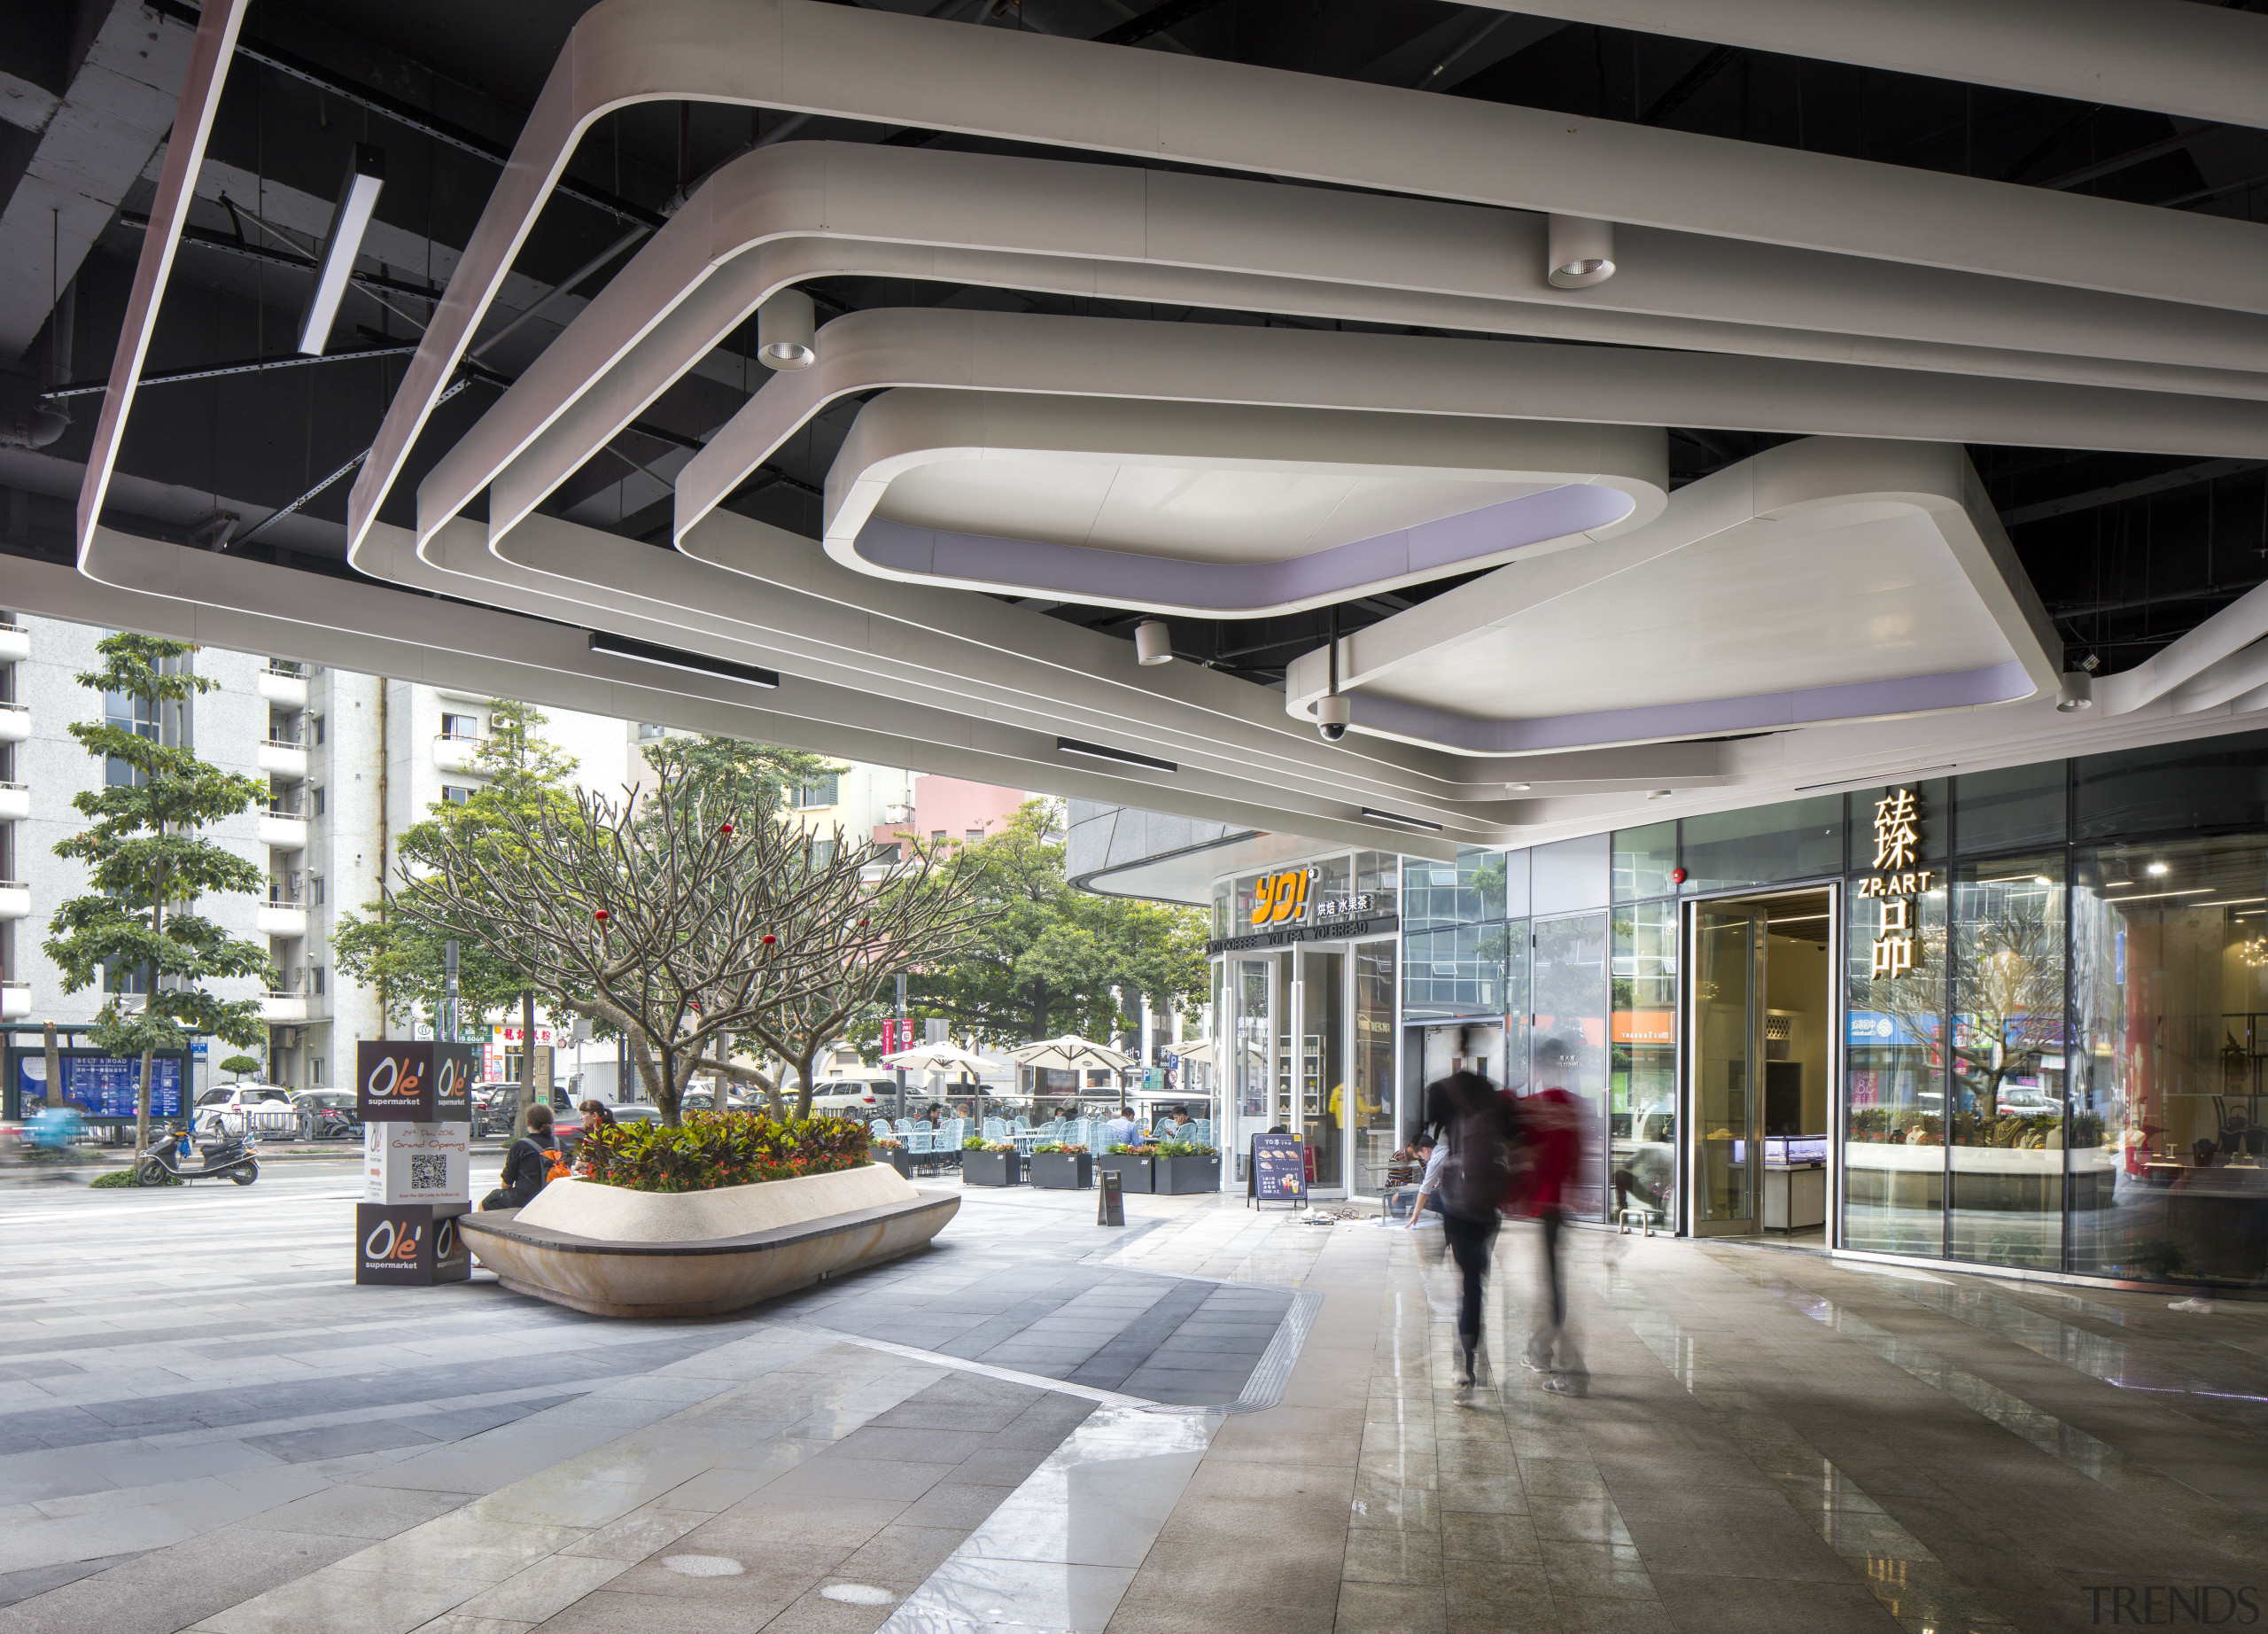 The Shekou Gateway One mall is unusual in building, lobby, metropolitan area, mixed use, shopping mall, gray